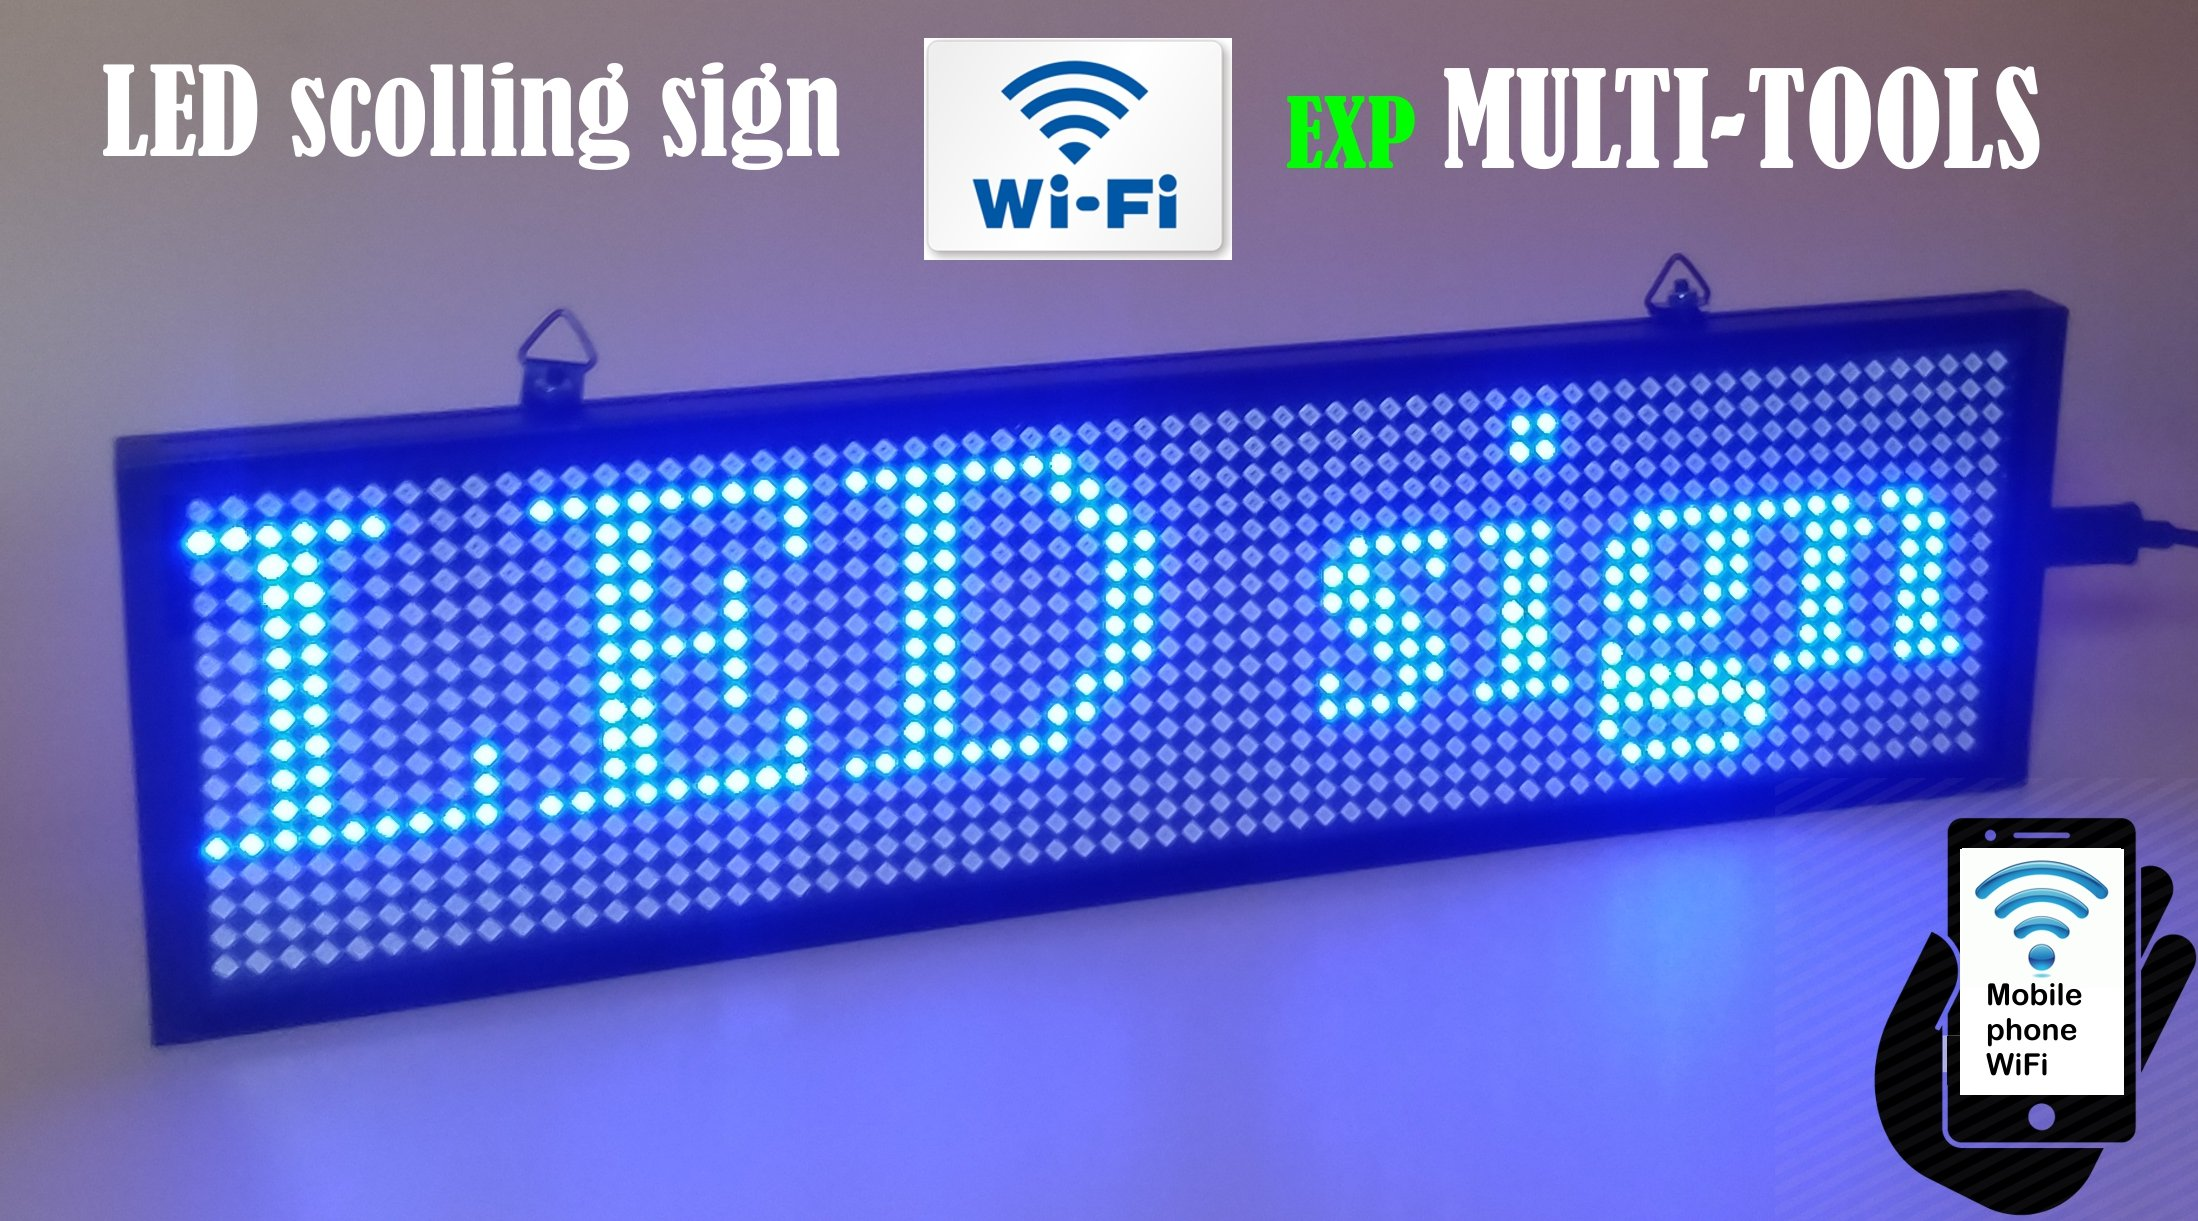 LED Display Blue Color with WiFi Connection, LED Scrolling Message Sign, Bright and in New Light auminum housing 13.5'' Lenght